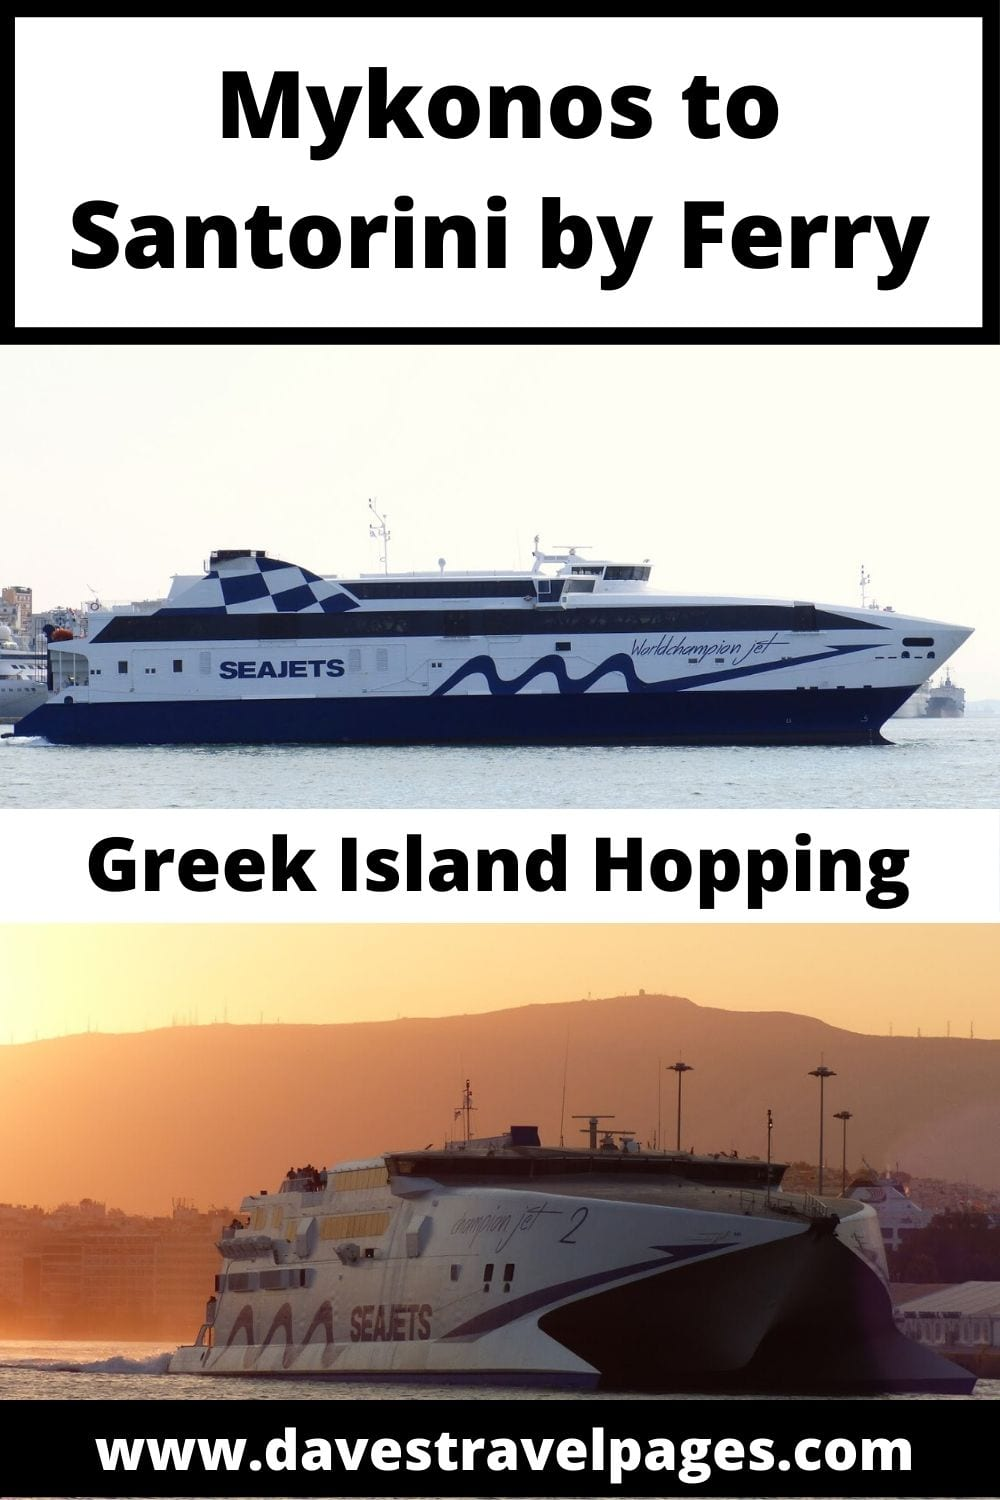 A complete guide on how to get from Mykonos to Santorini in Greece.